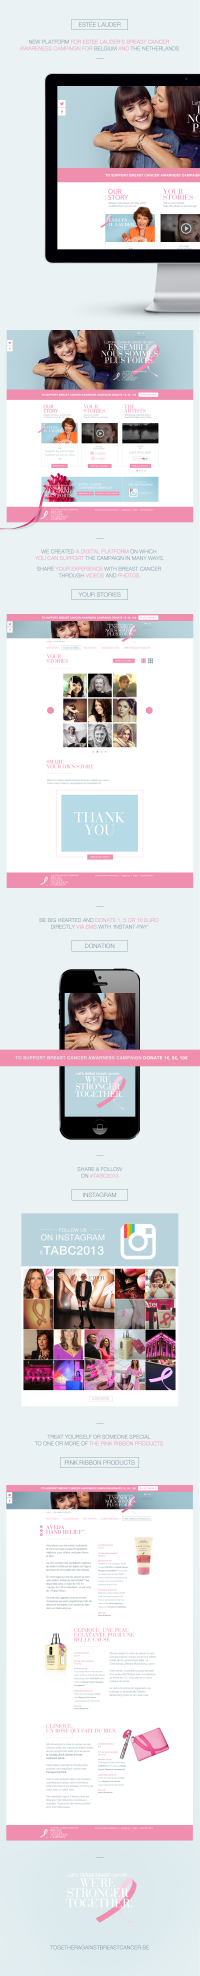 Estée Lauder's Together Against Breast Cancer campaign on